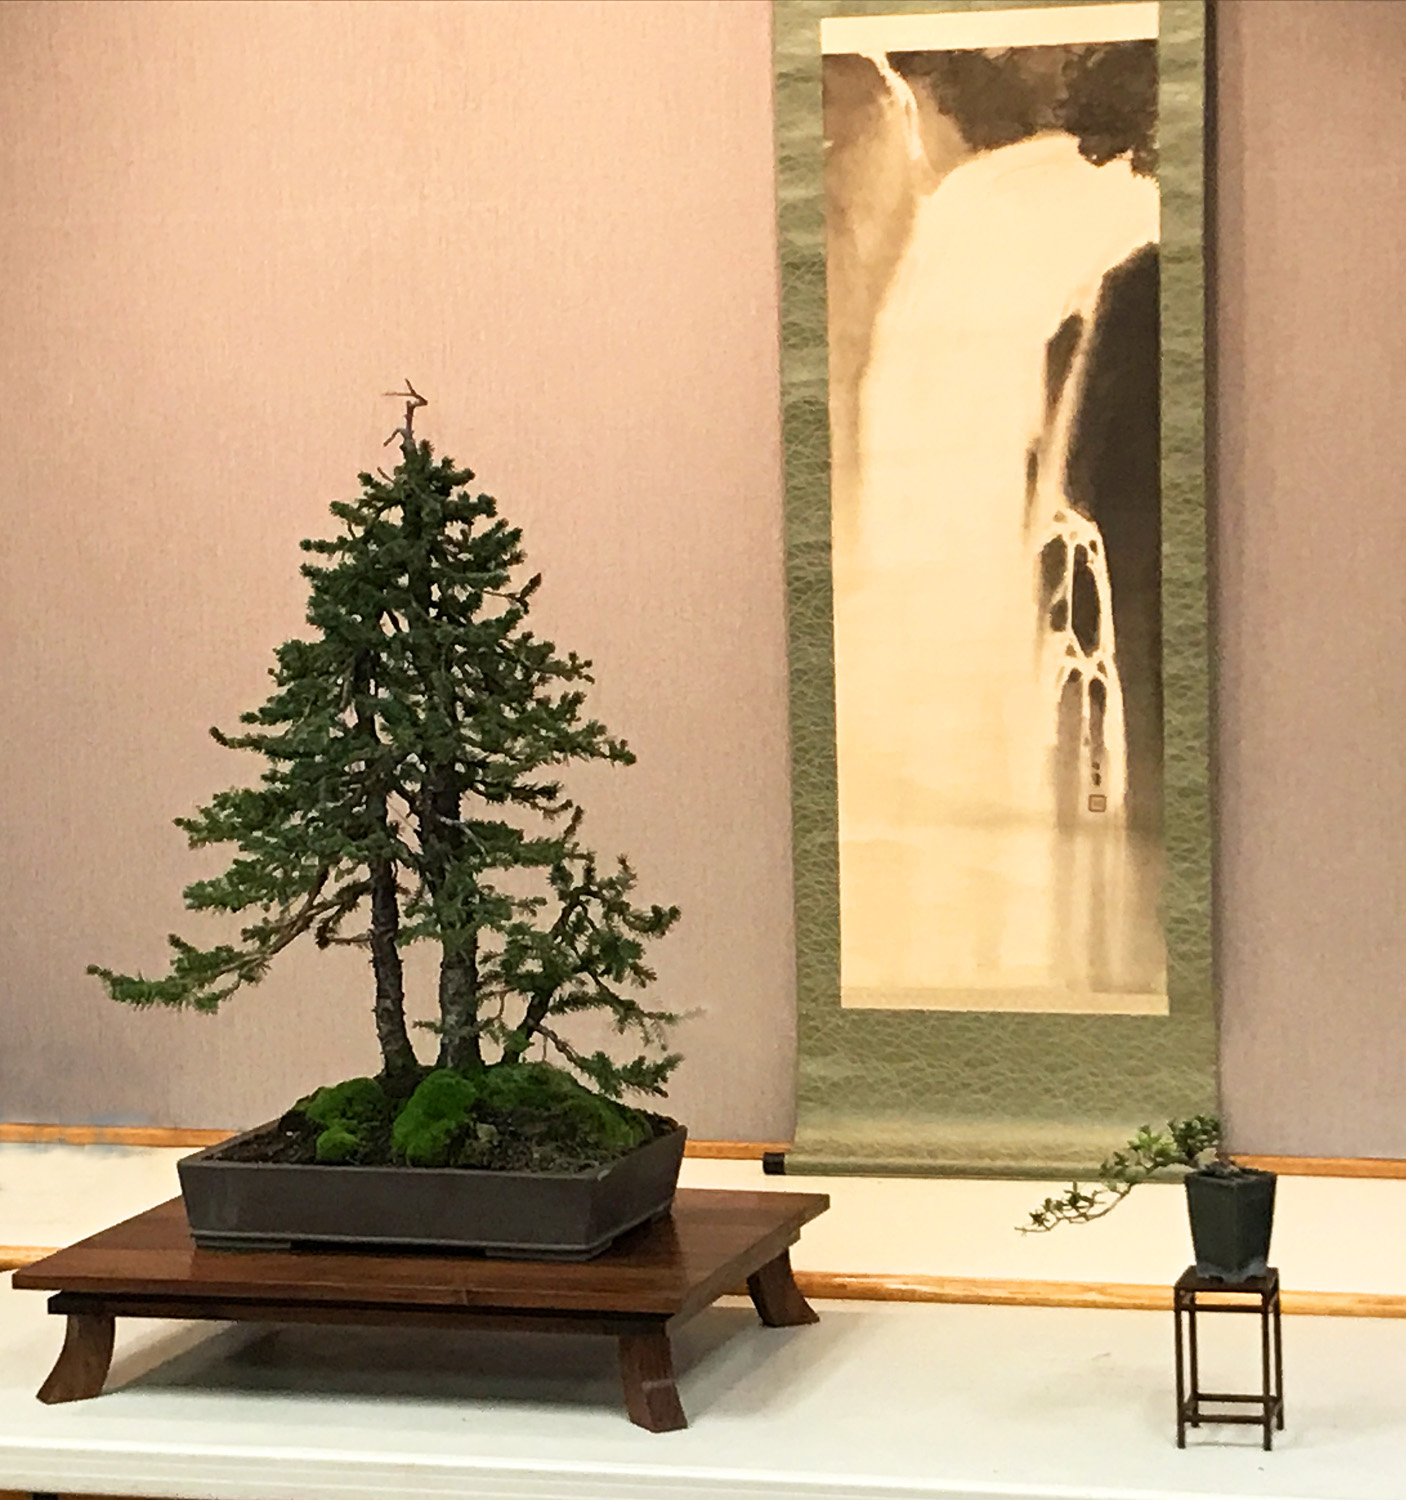 Bonsai display design Sherrod demo.